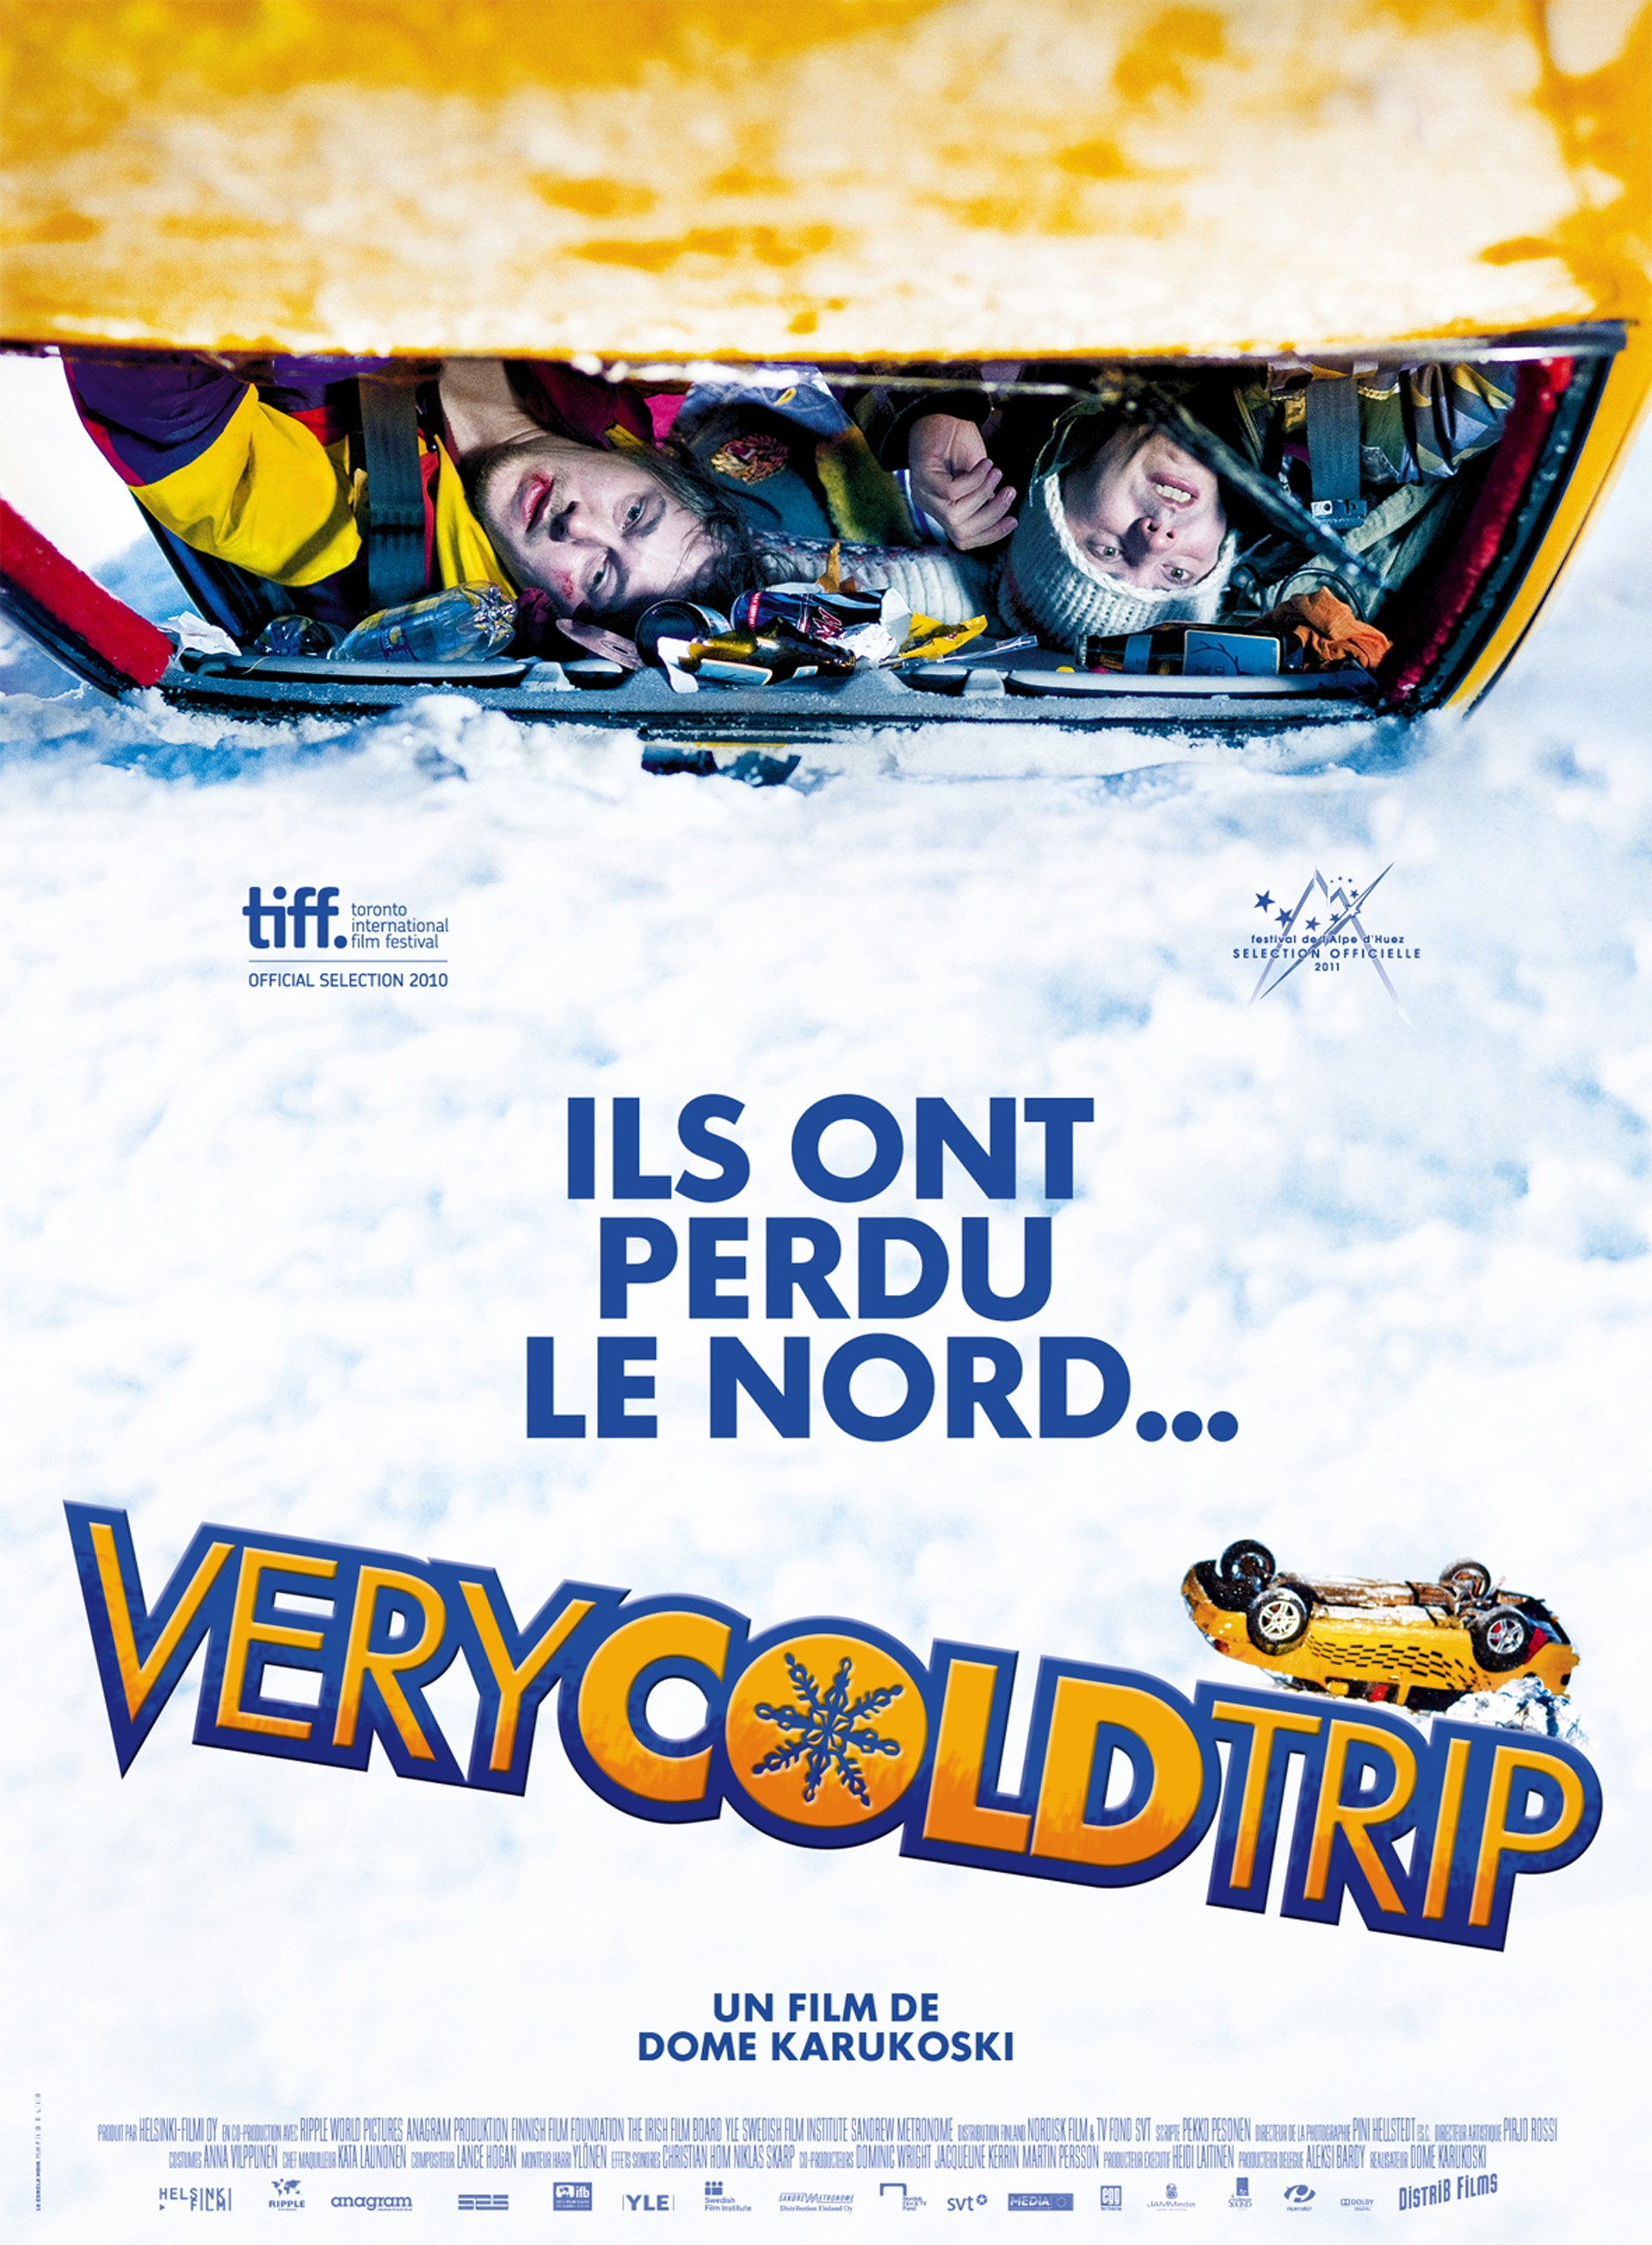 [DF] Very Cold Trip [TRUEFRENCH][DVDRiP]